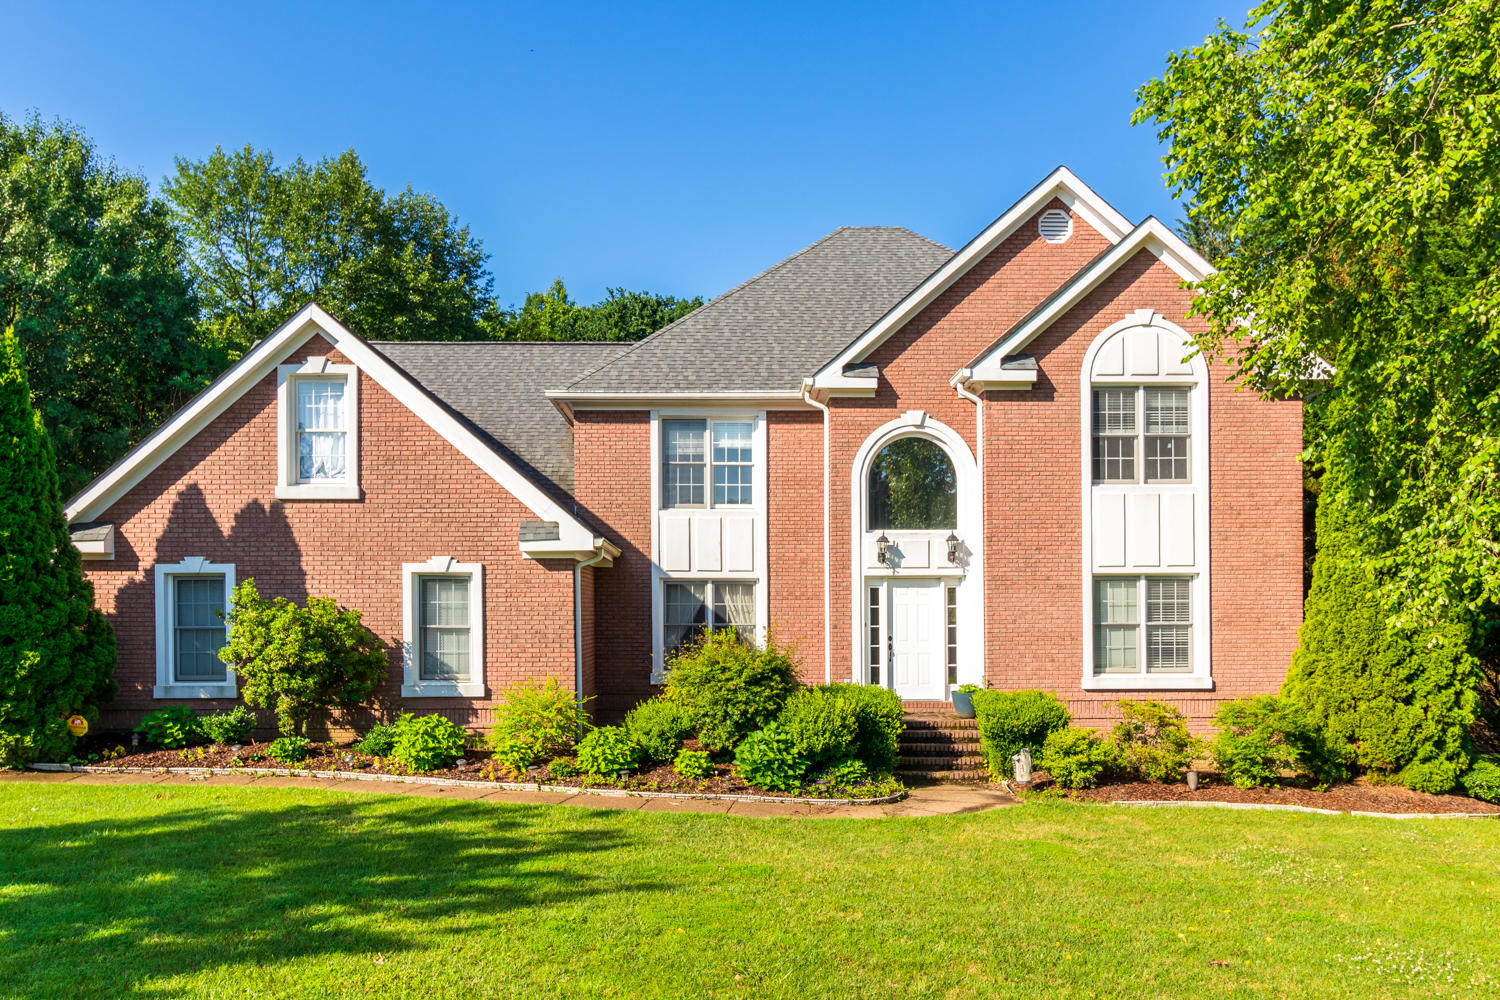 5 Saint Ives Way, Signal Mountain, TN 37377